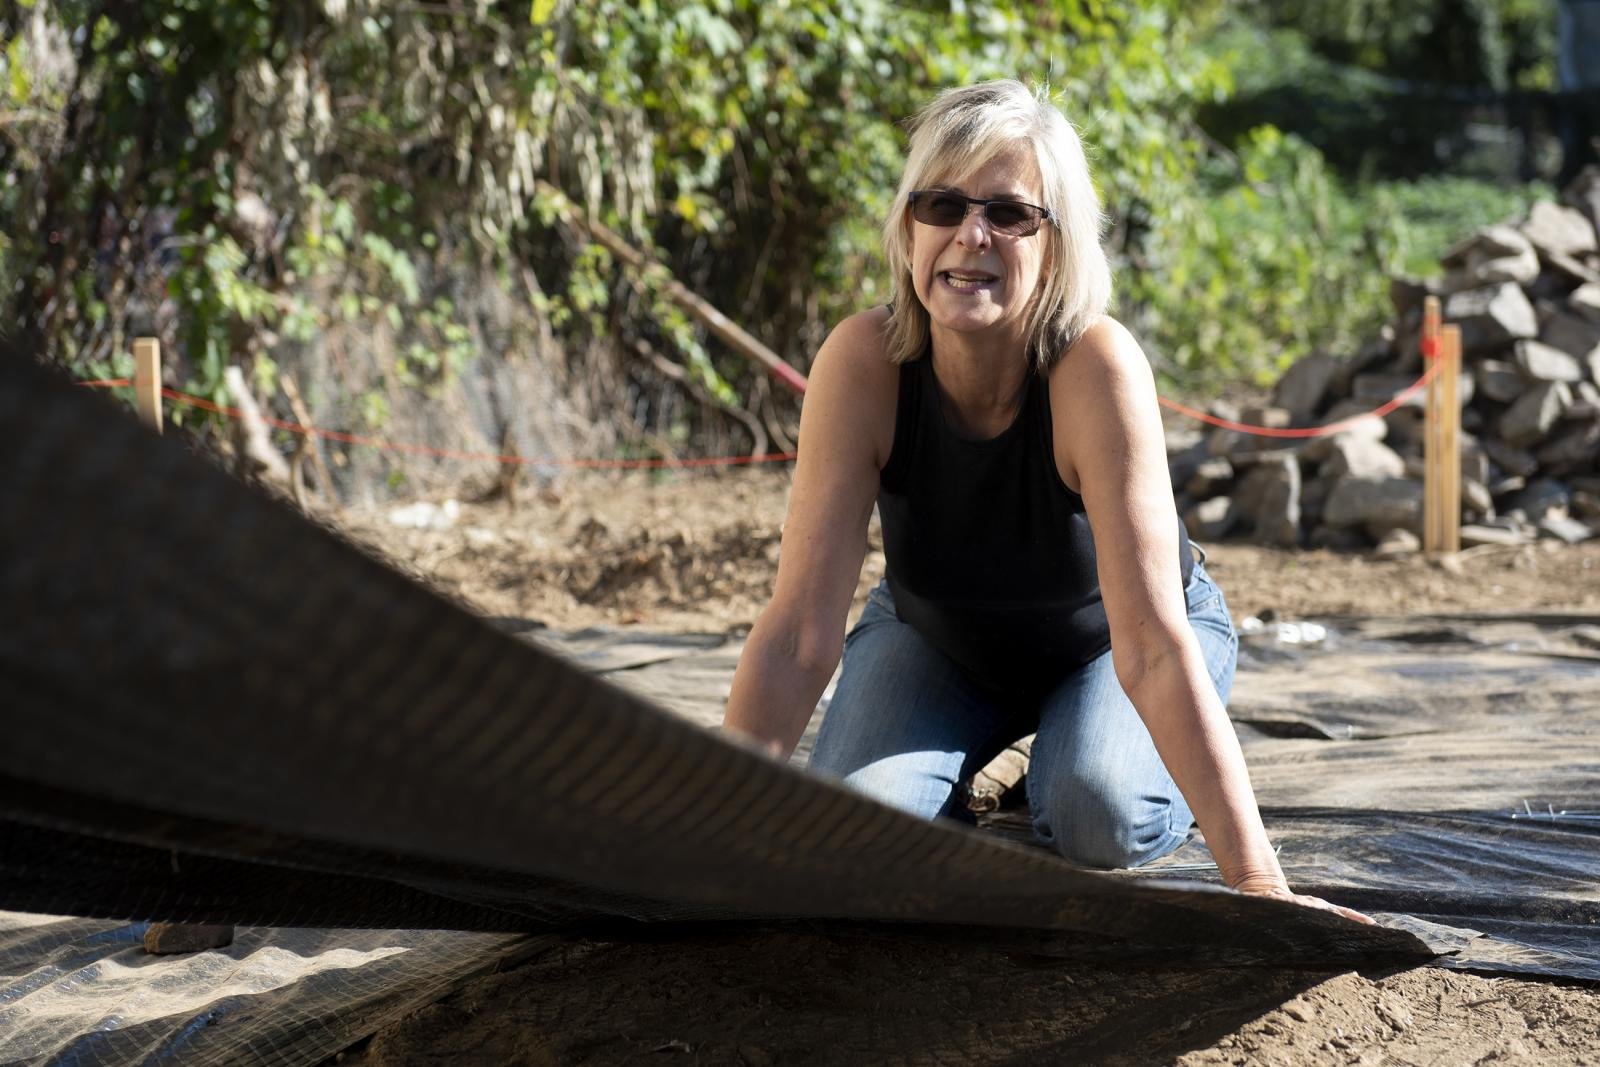 Kim Douglas, Director of Landscape Architecture and Associate Professor at Jefferson University, lays out a black mat to place gravel on for the construction of the park at the corner of N 38th St., and Melon St. through the program Park in a Truck on Saturday, Oct. 12, 2019.